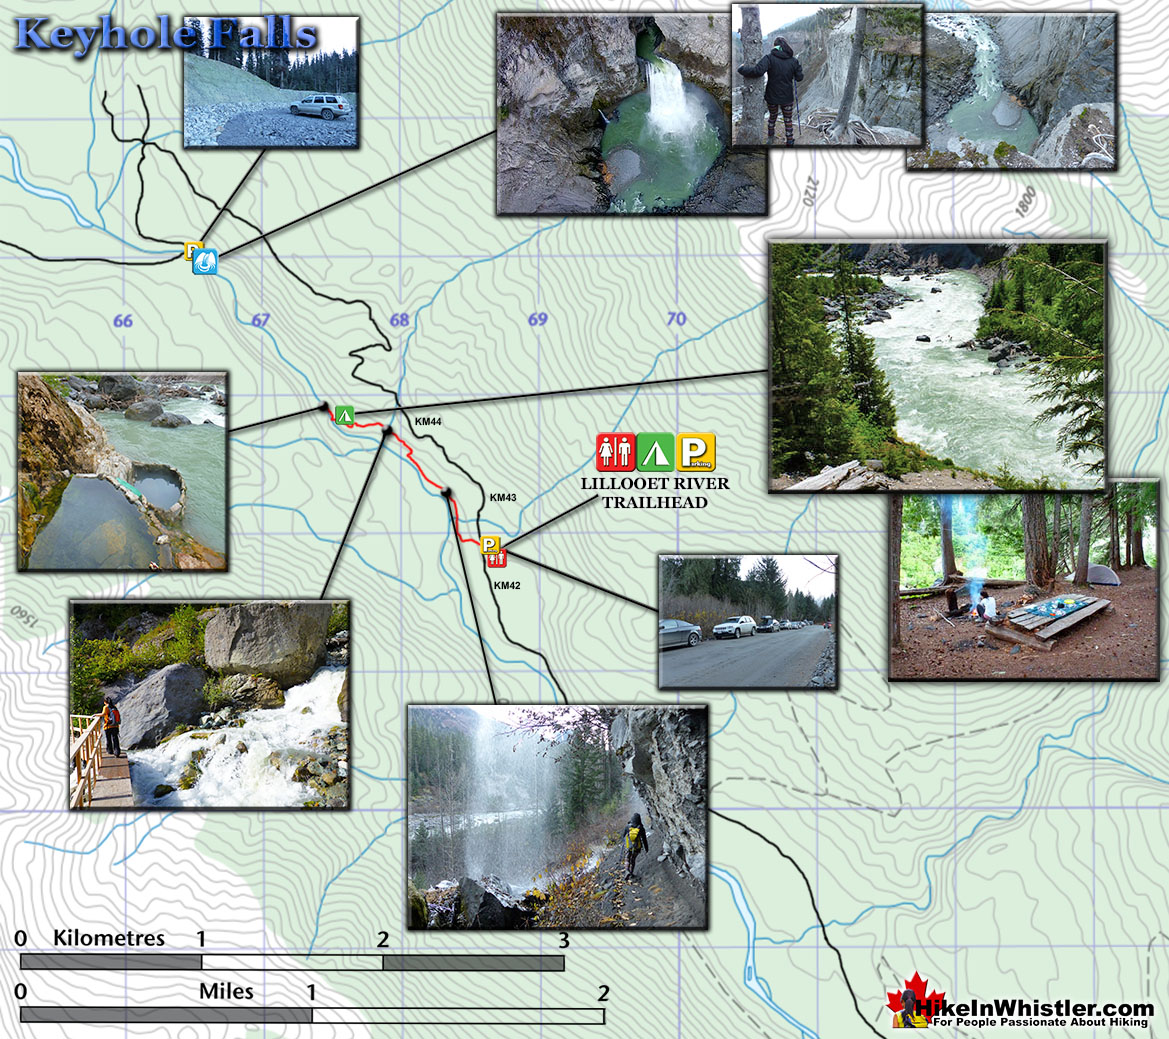 Keyhole Falls and Hot Springs Map